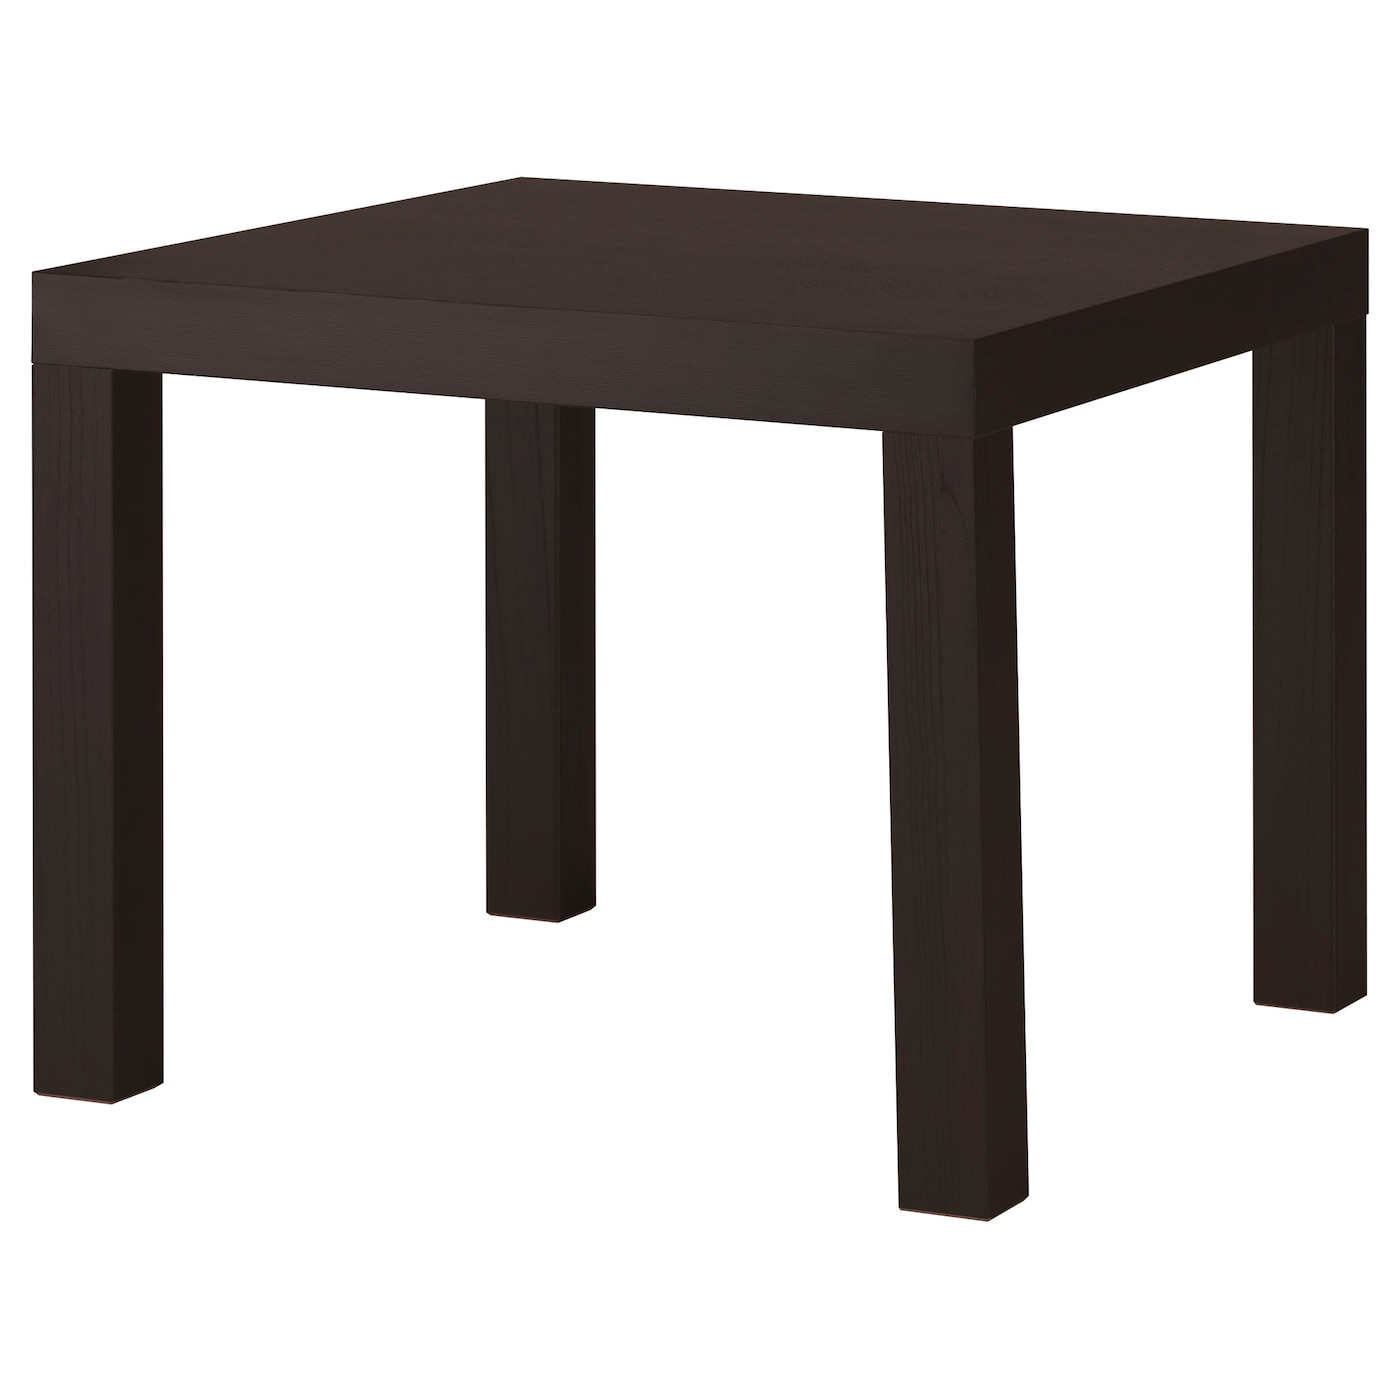 lack table d 39 appoint brun noir 55 x 55 cm ikea. Black Bedroom Furniture Sets. Home Design Ideas